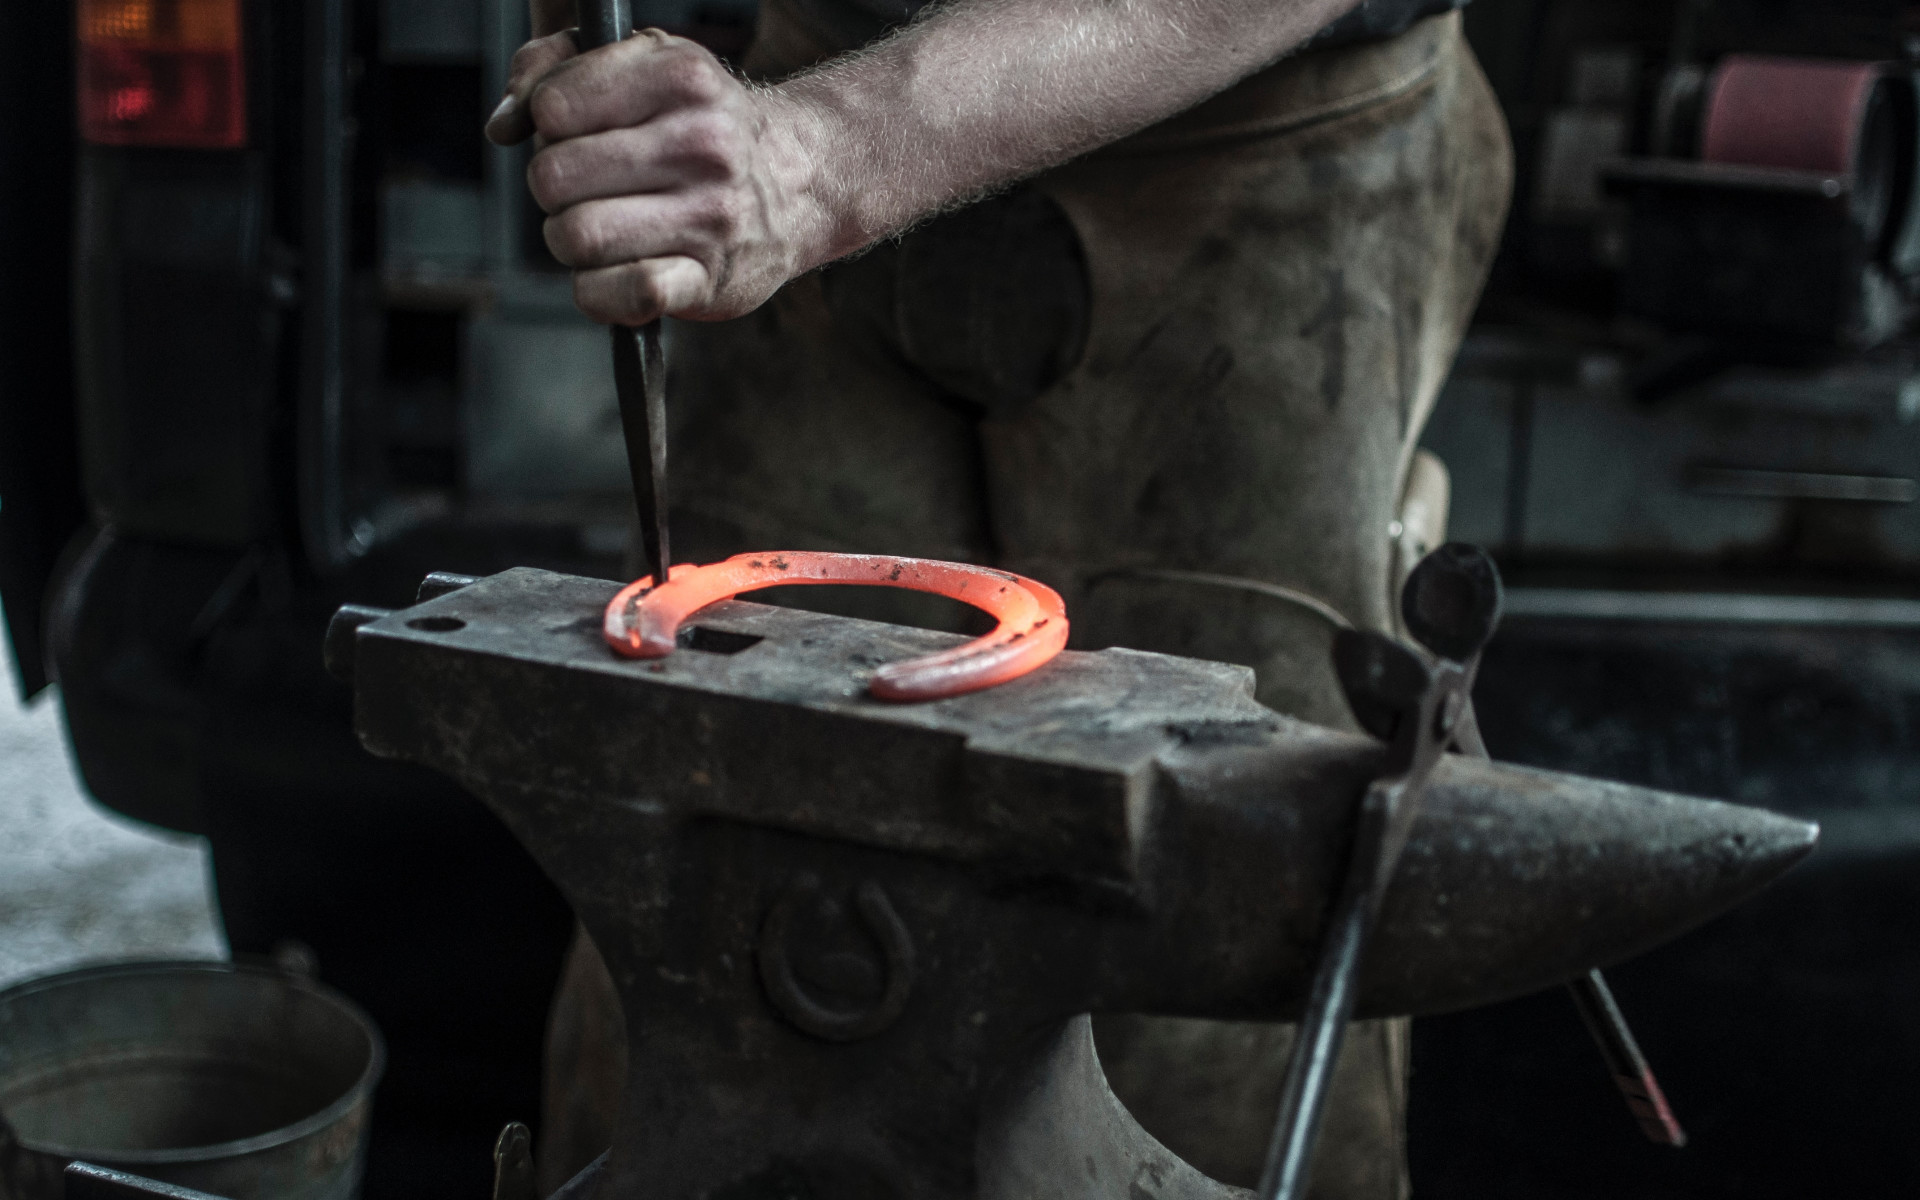 Blacksmith doing a Horseshoe | 1920x1200 wallpaper